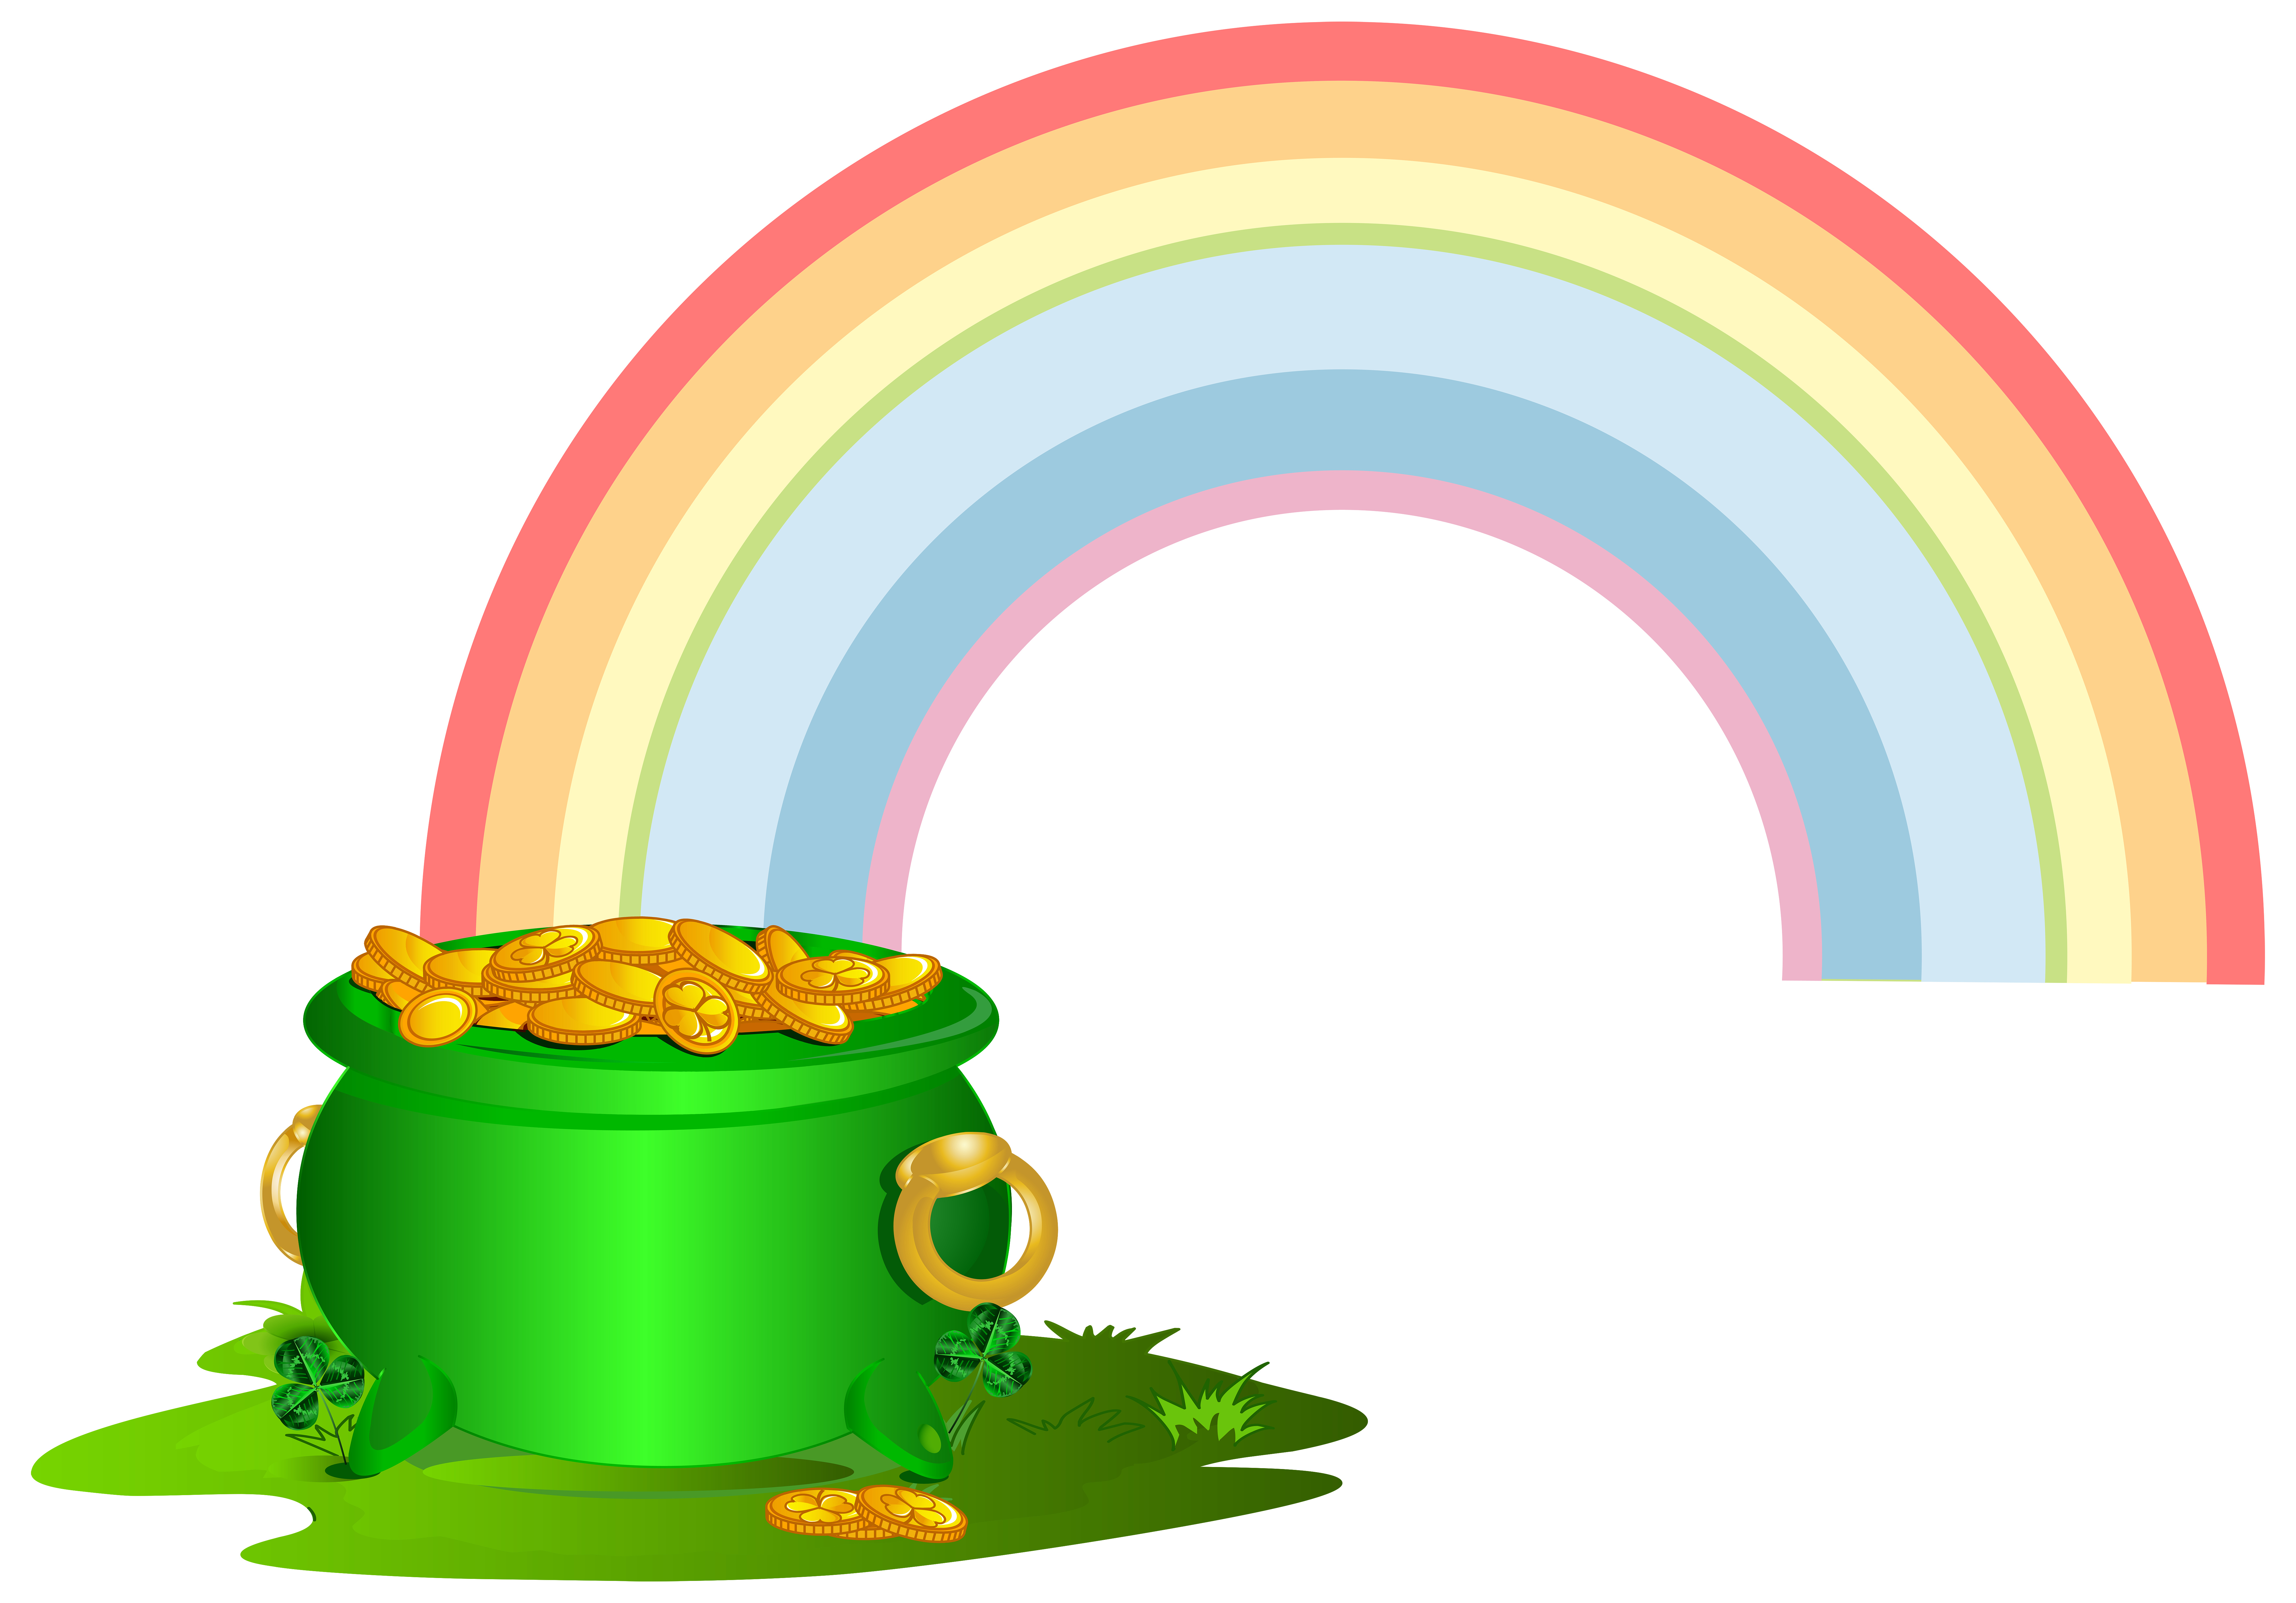 Rainbows With Pot Of Gold | Free download on ClipArtMag